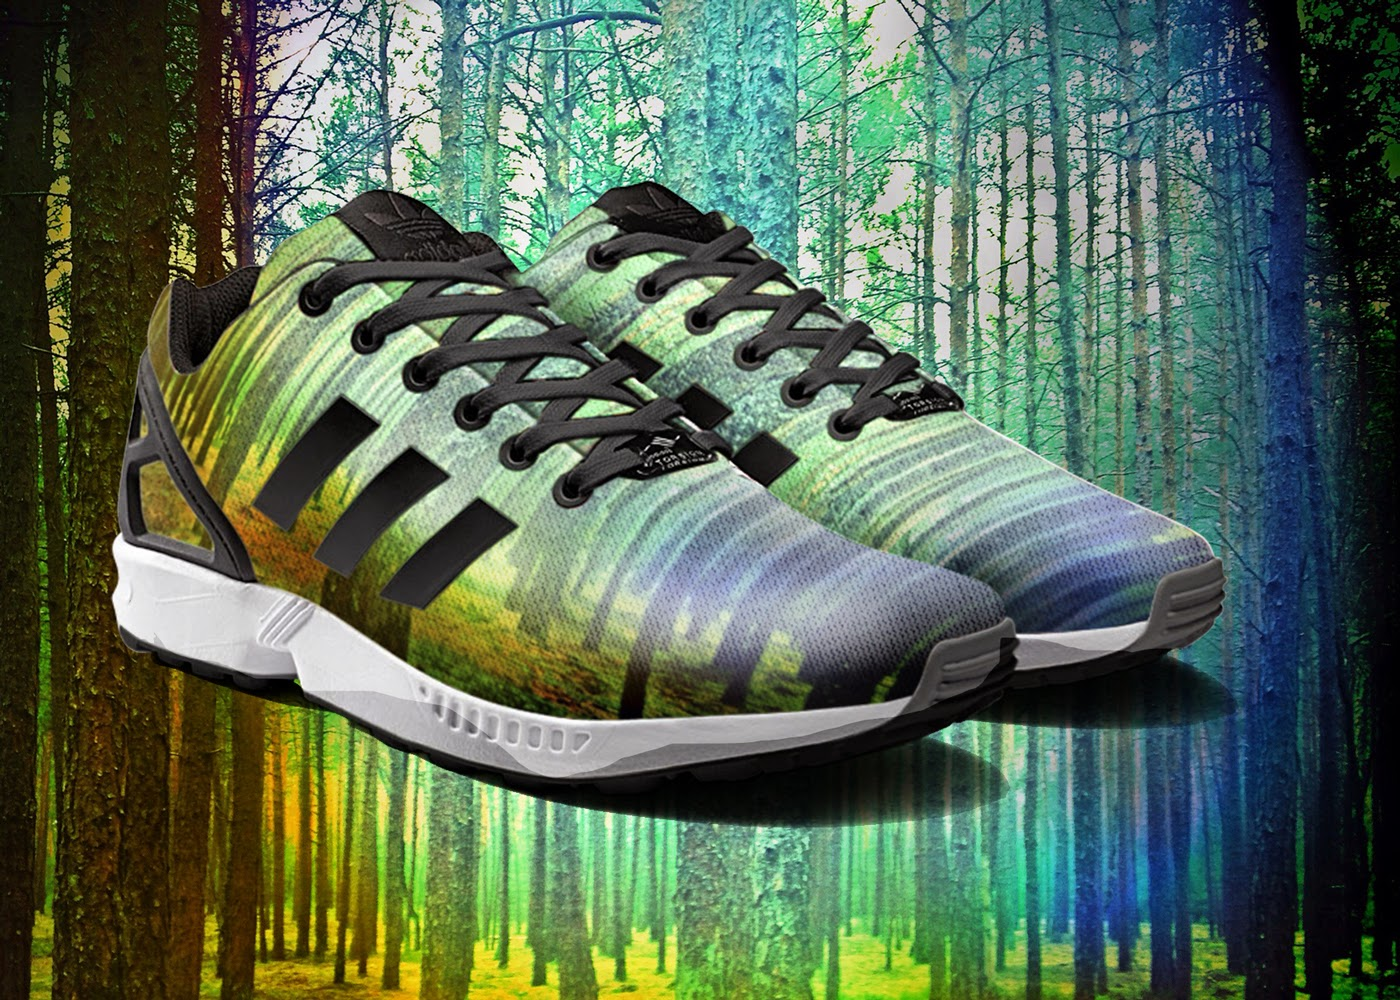 10-mi-Adidas-ZX-Flux-Shoe-App-to-Customise-your-Shoes-www-designstack-co